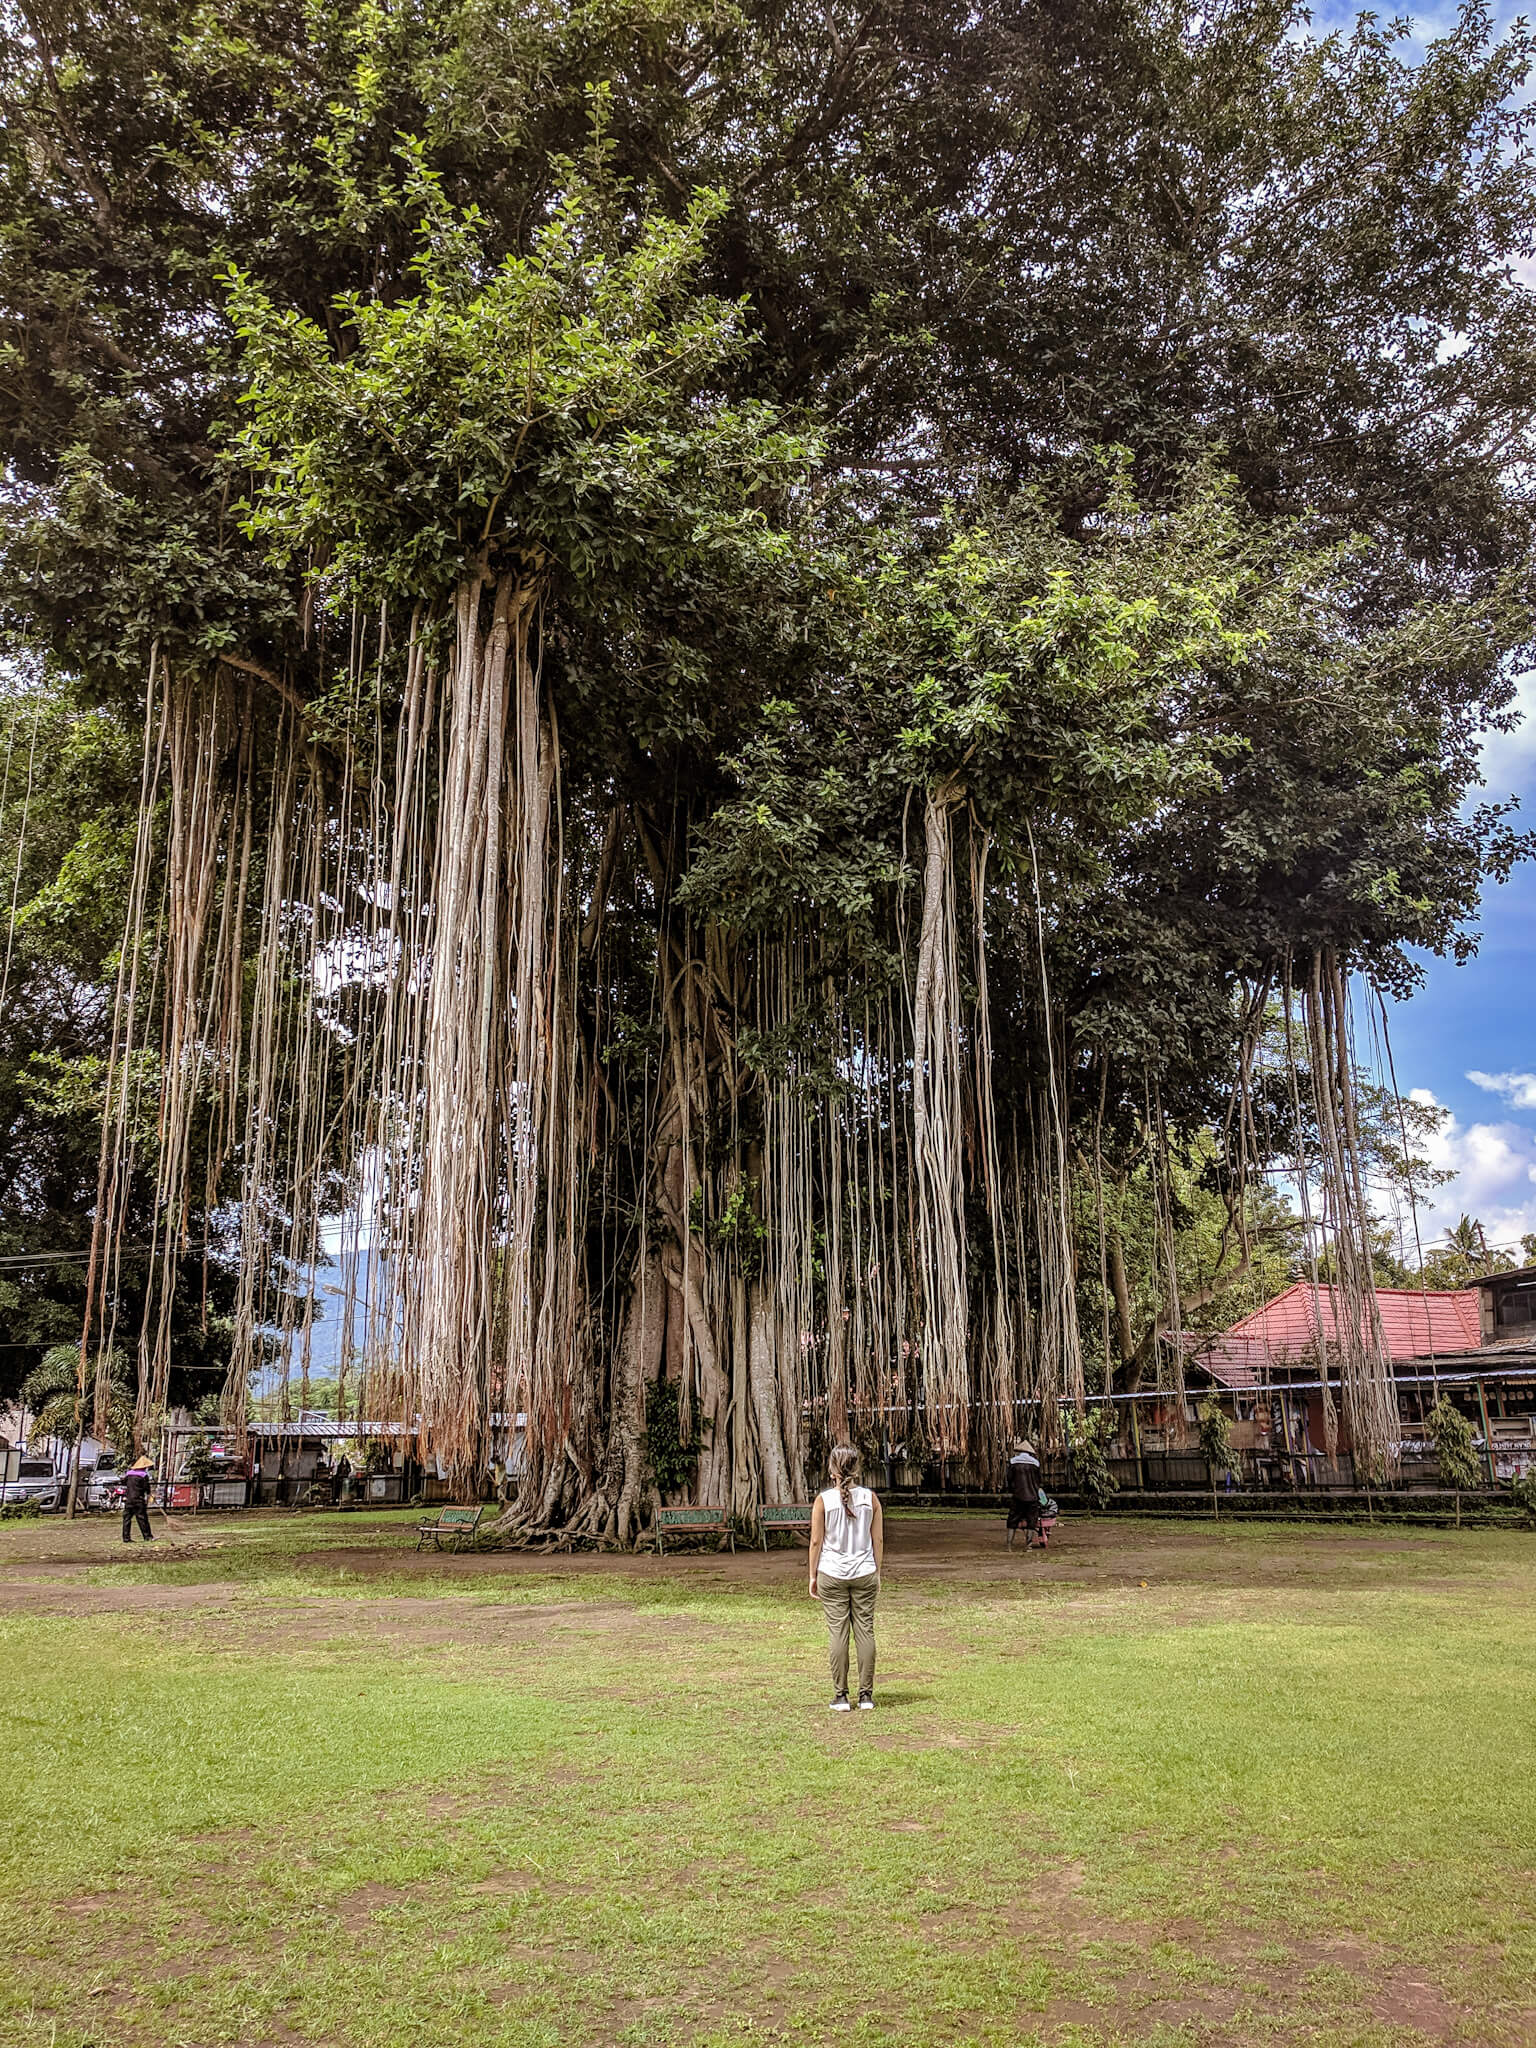 Old Banyan Tree at Candi Mendut in Indonesia